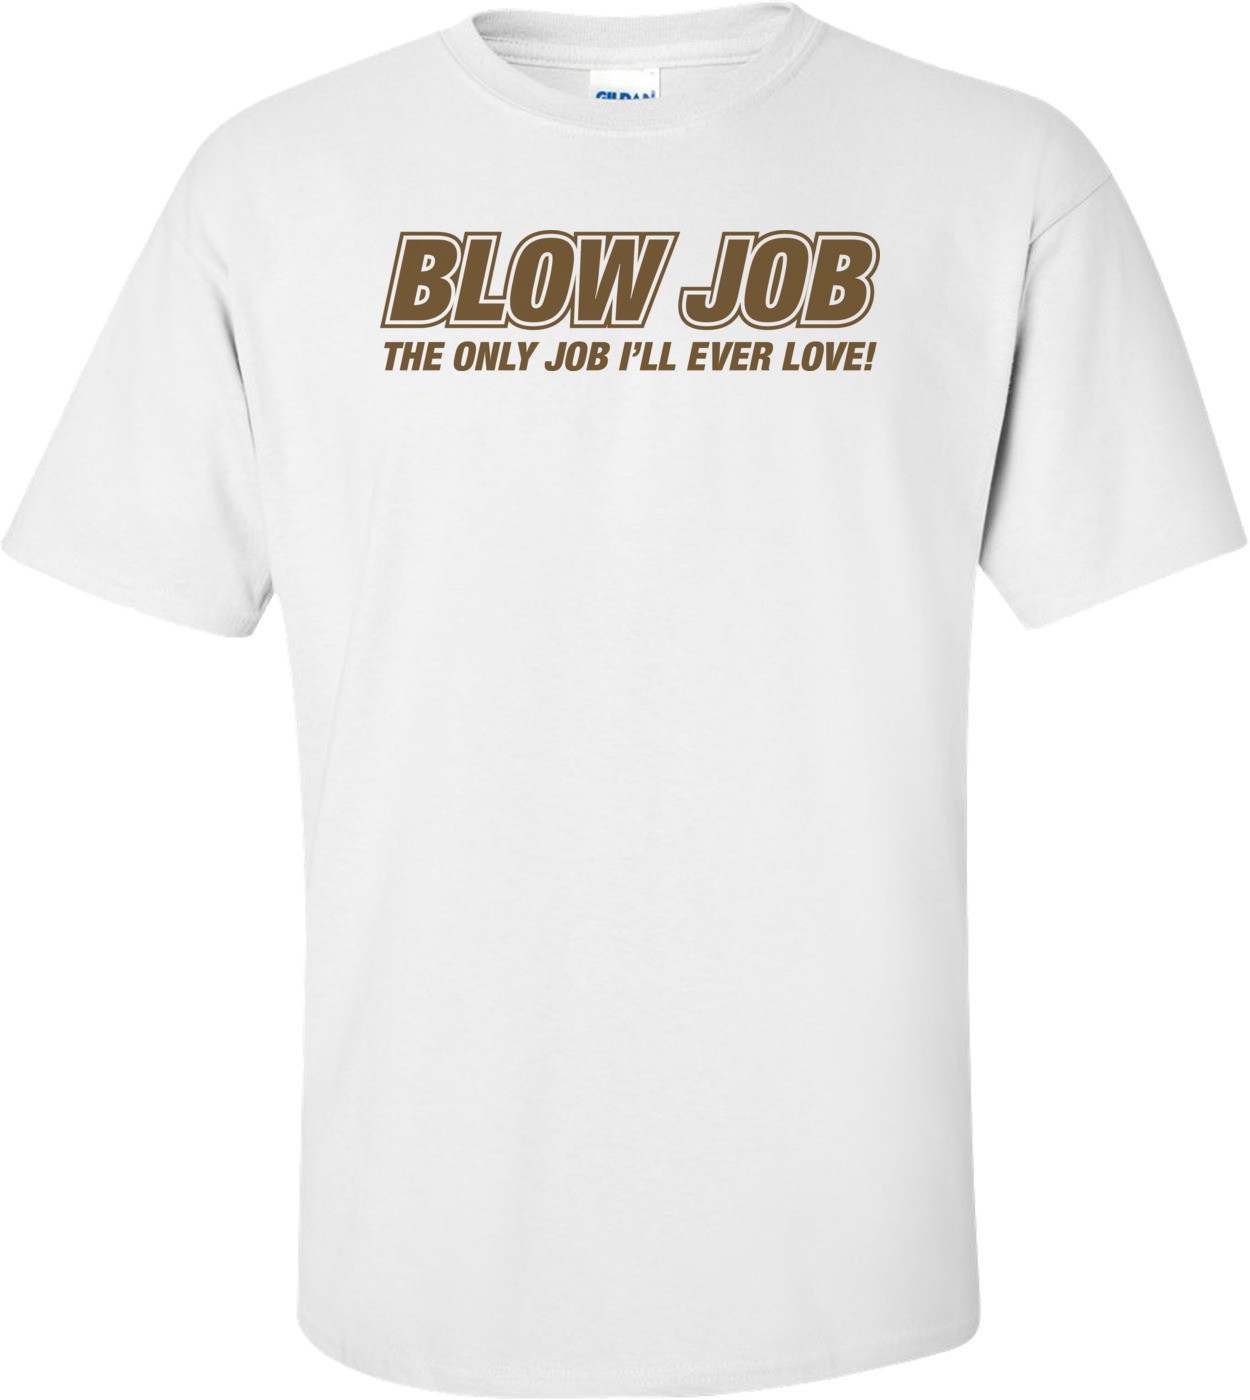 Blow Job The Only Job I'll Ever Love T-shirt